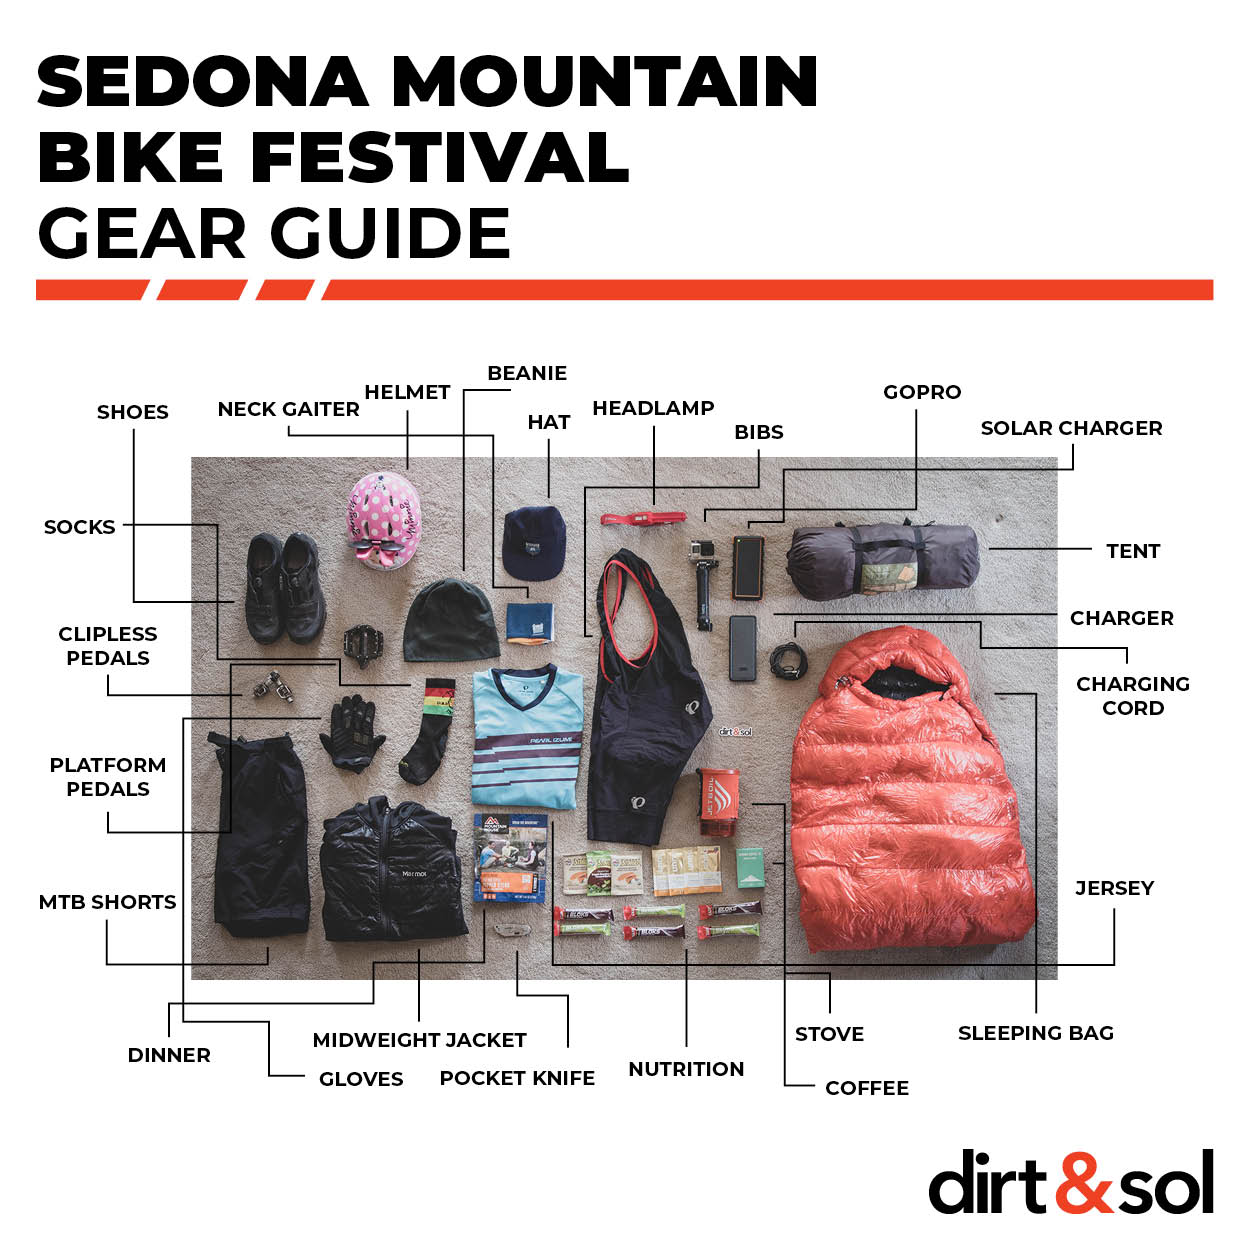 Sedona Mountain Bike Festival Gear Guide